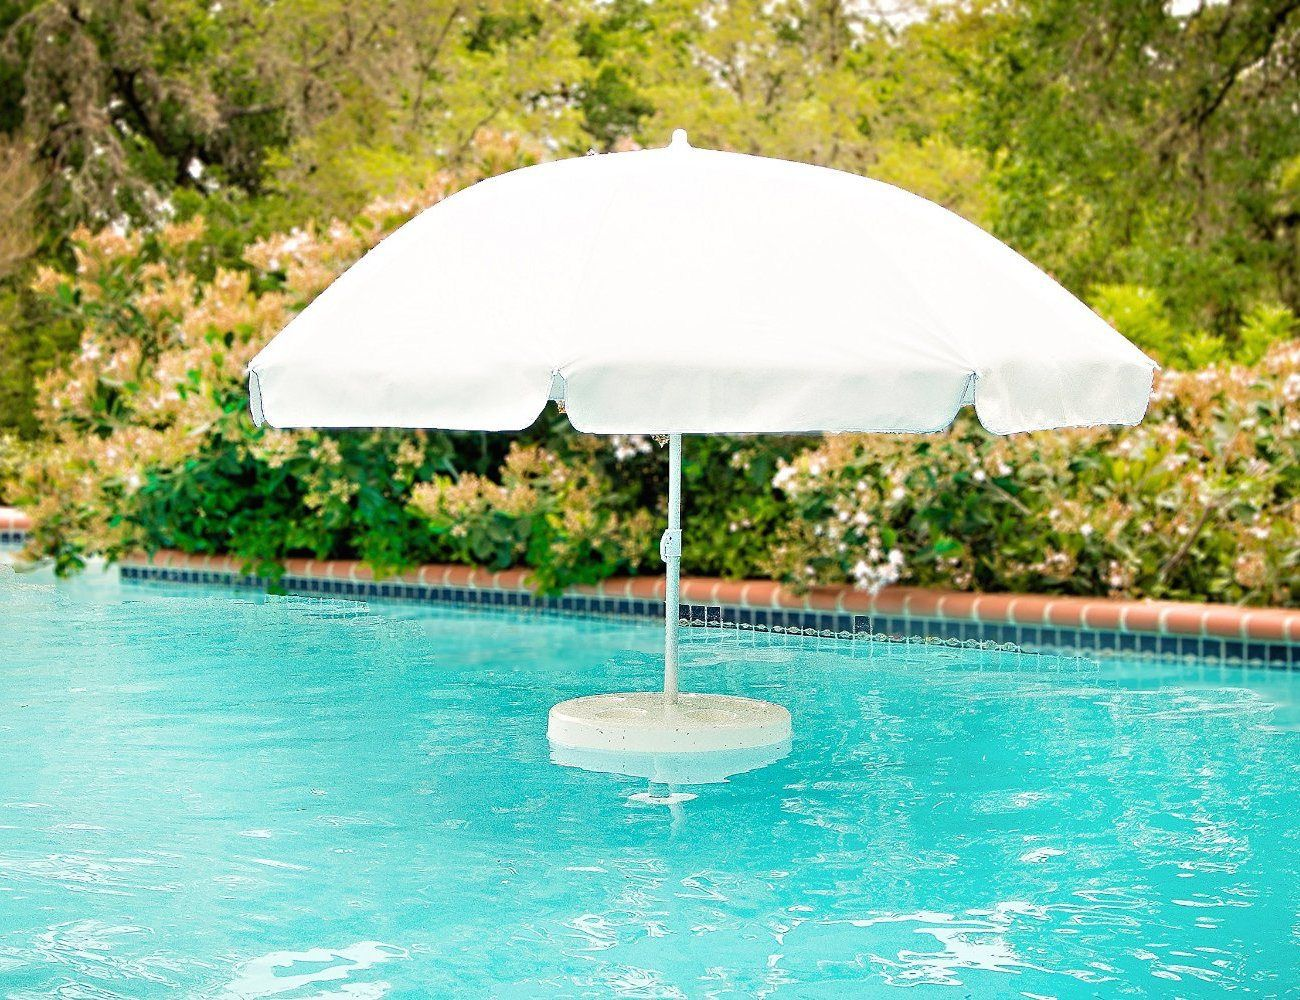 Relaxation Station Pool Lounge: Floating Pool Table With Umbrella